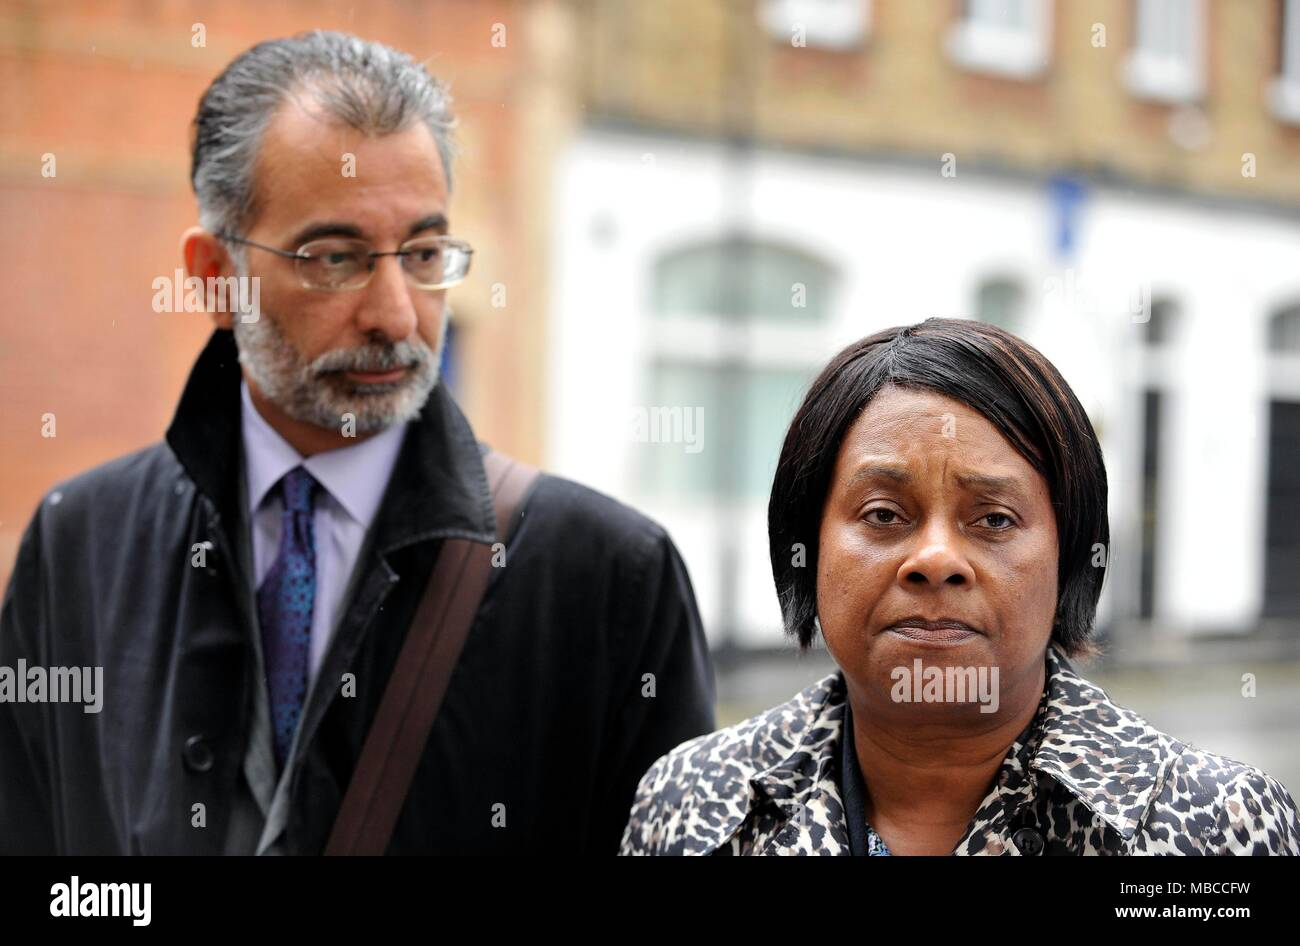 """Doreen Lawrence, the mother of murdered teenager Stephen Lawrence, with leading lawyer Imran Khan who has claimed institutional racism is """"thriving"""" in the Metropolitan Police, nearly 25 years on from the murder Mr Lawrence. - Stock Image"""